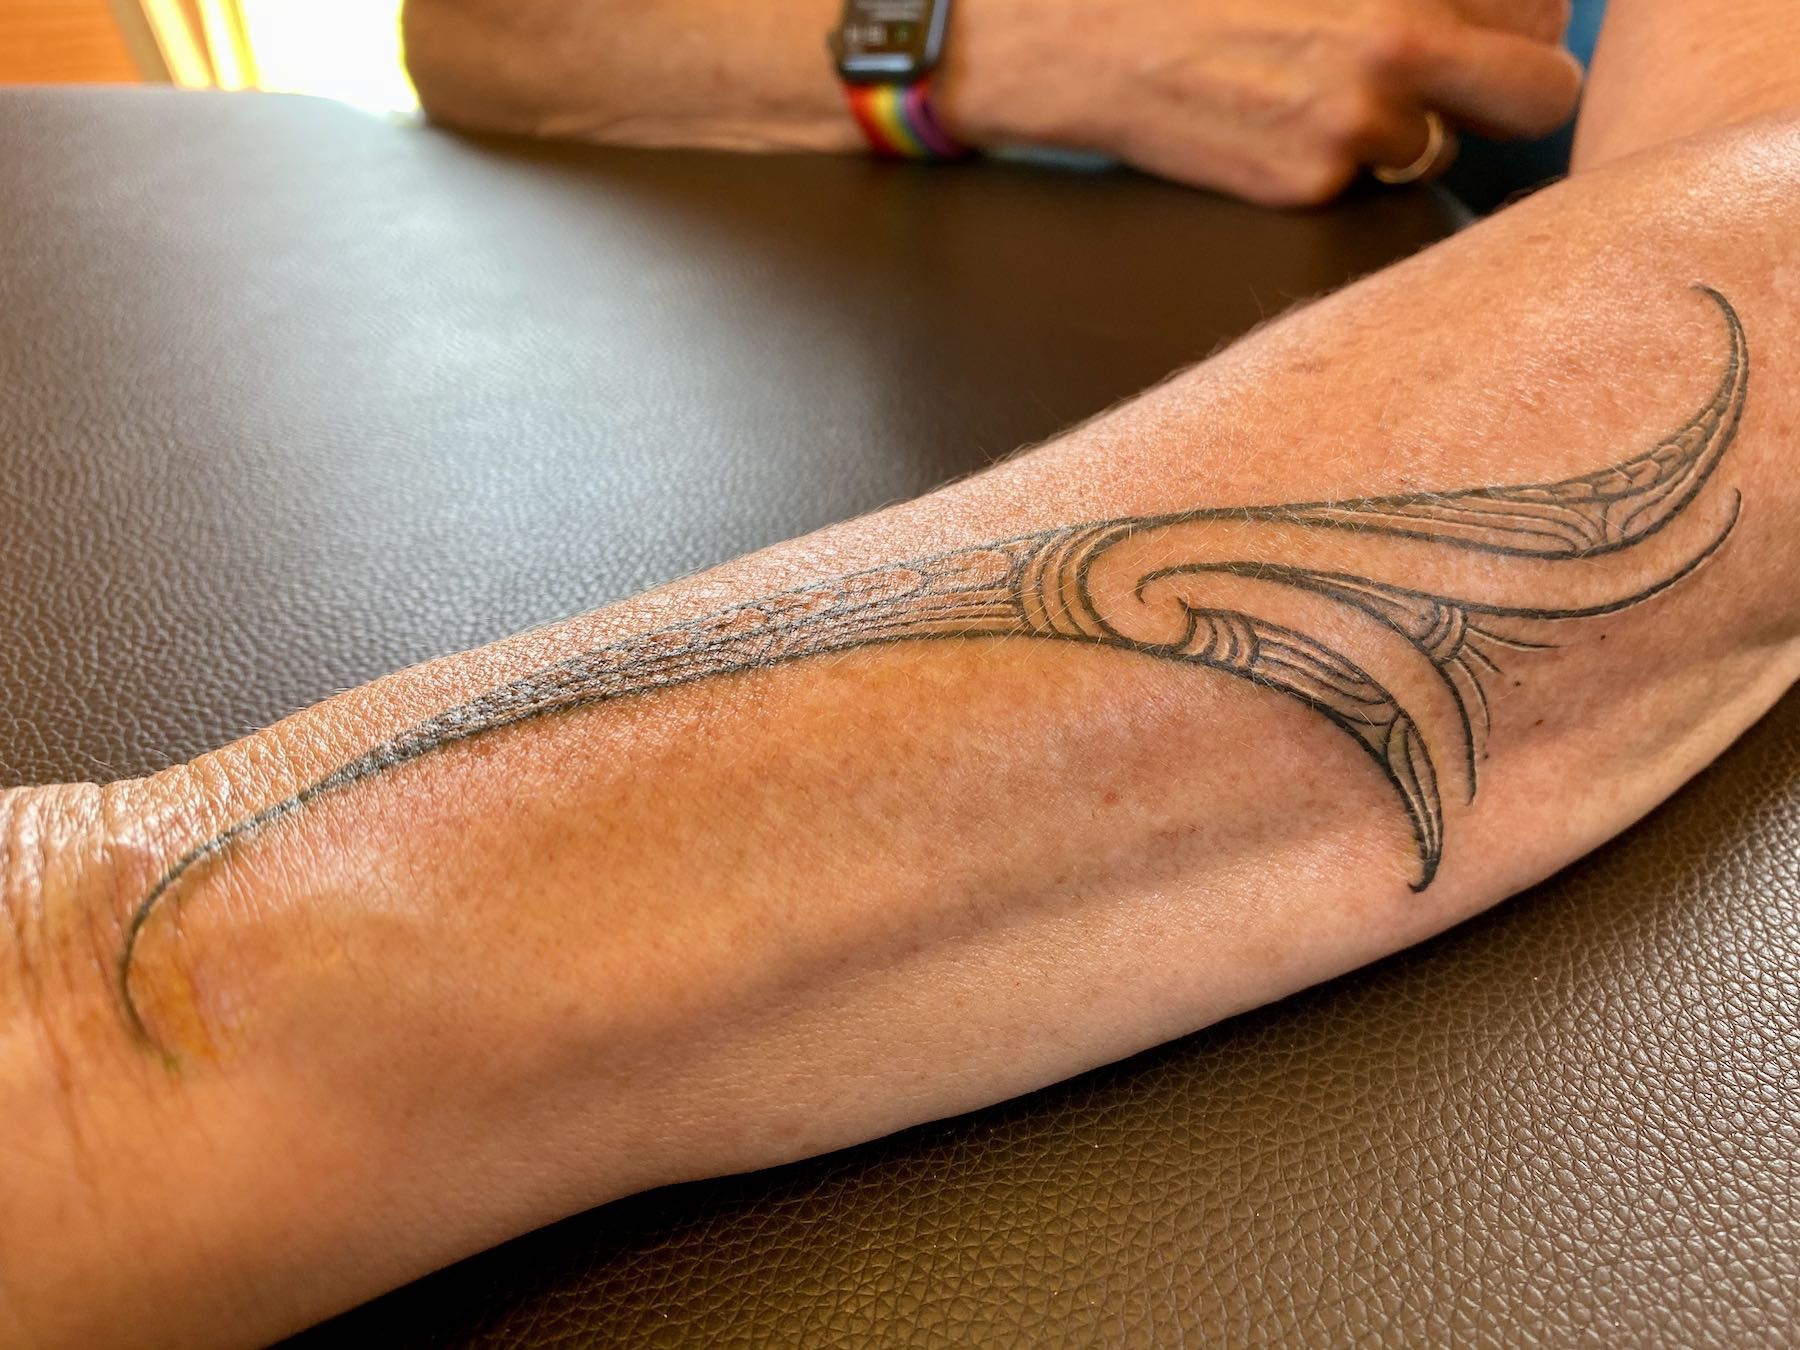 A slender tattoo in black ink on my left forearm.